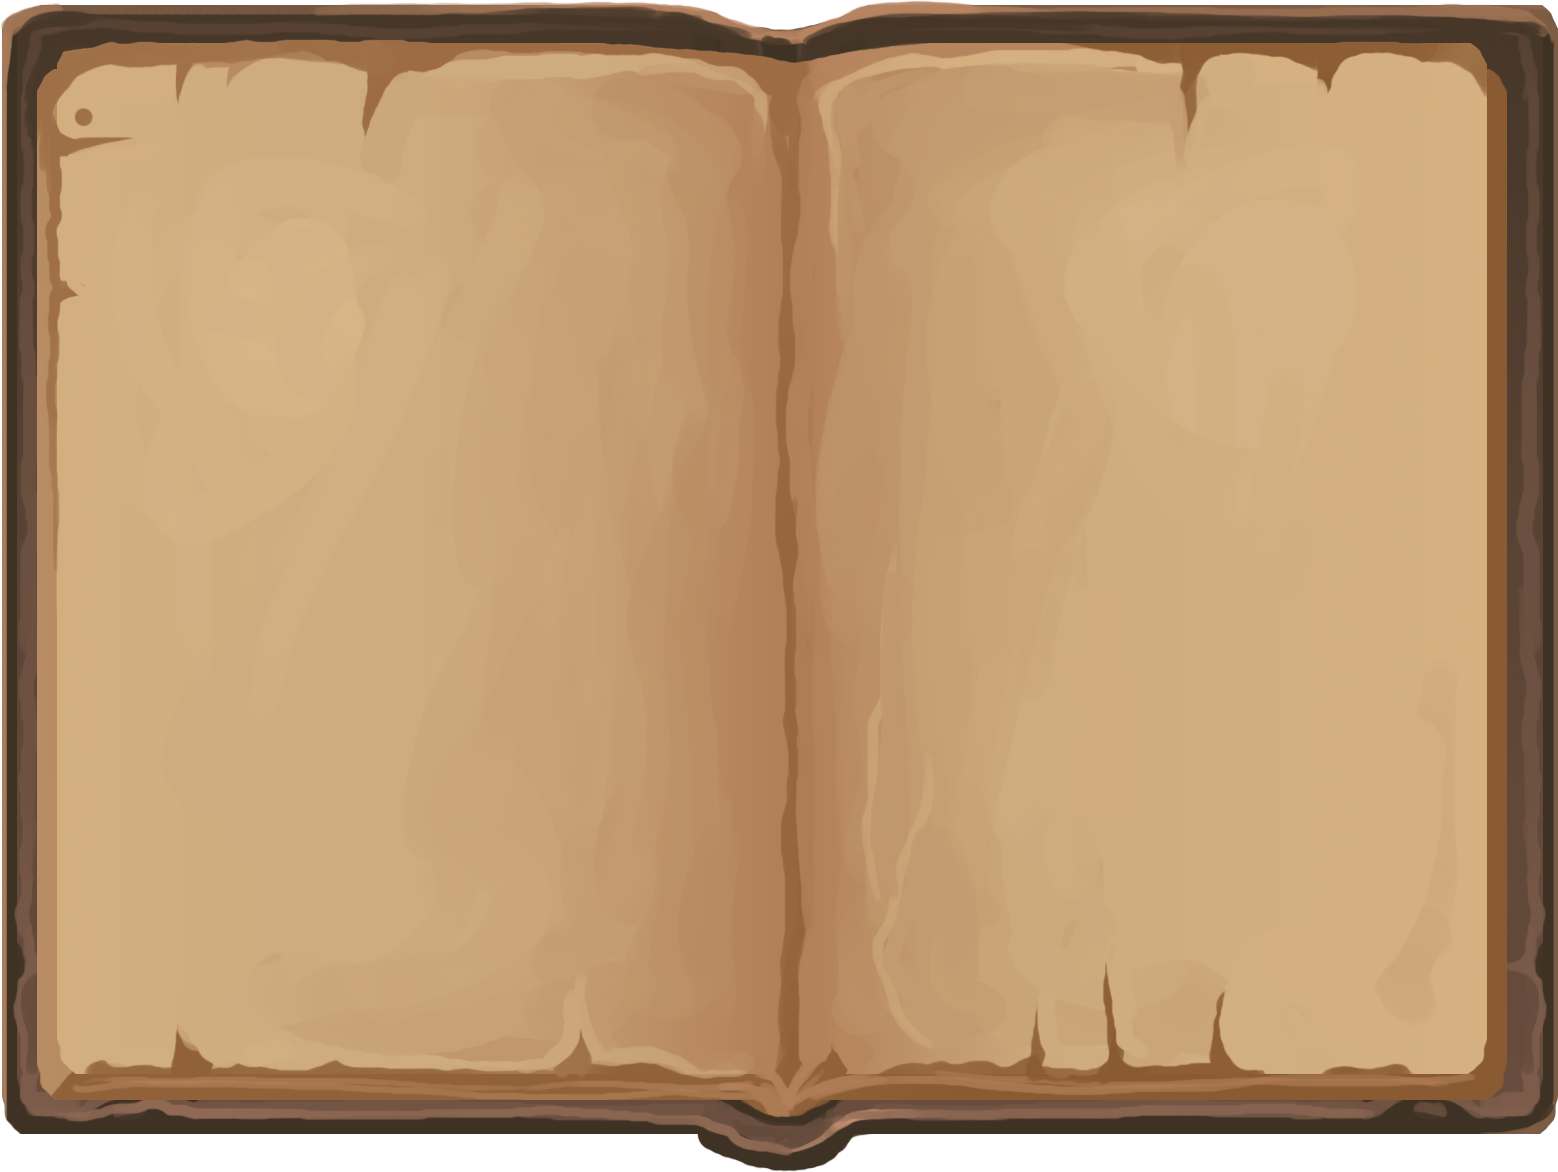 images/GUI/book.png